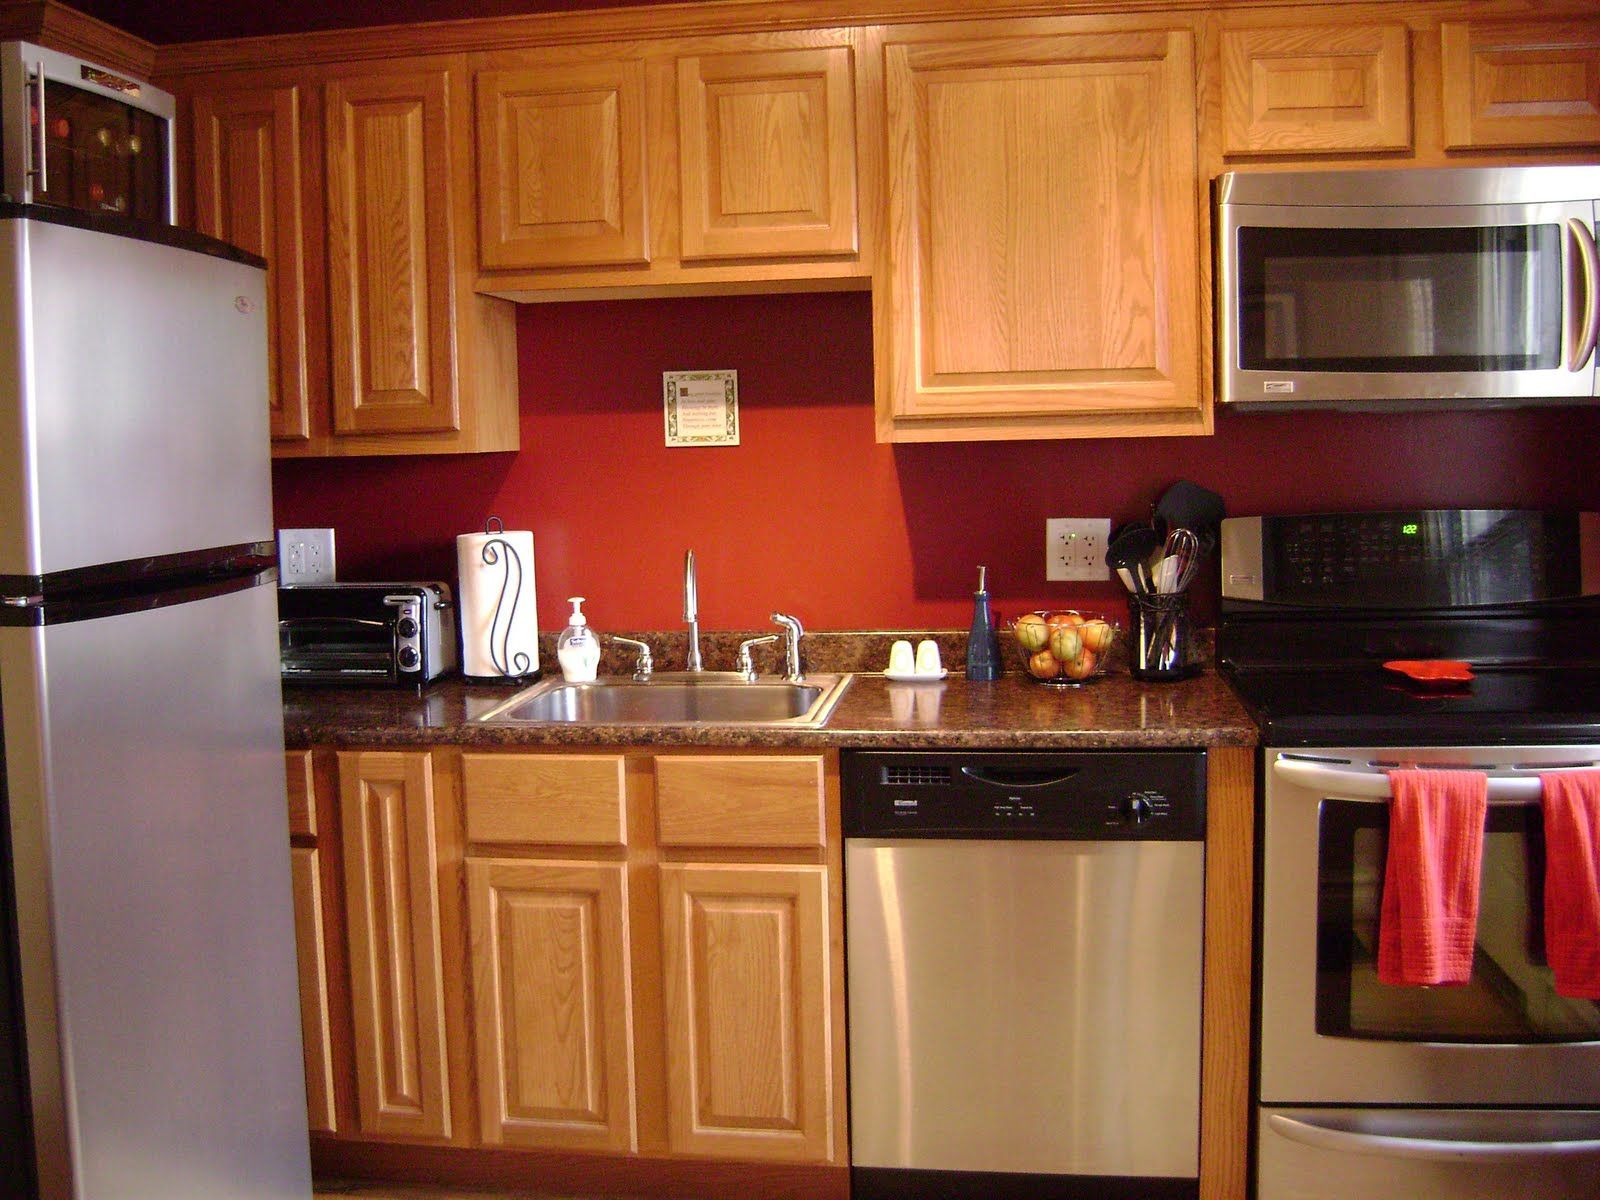 Kitchen wall color ideas with oak cabinets design idea Kitchen wall paint ideas